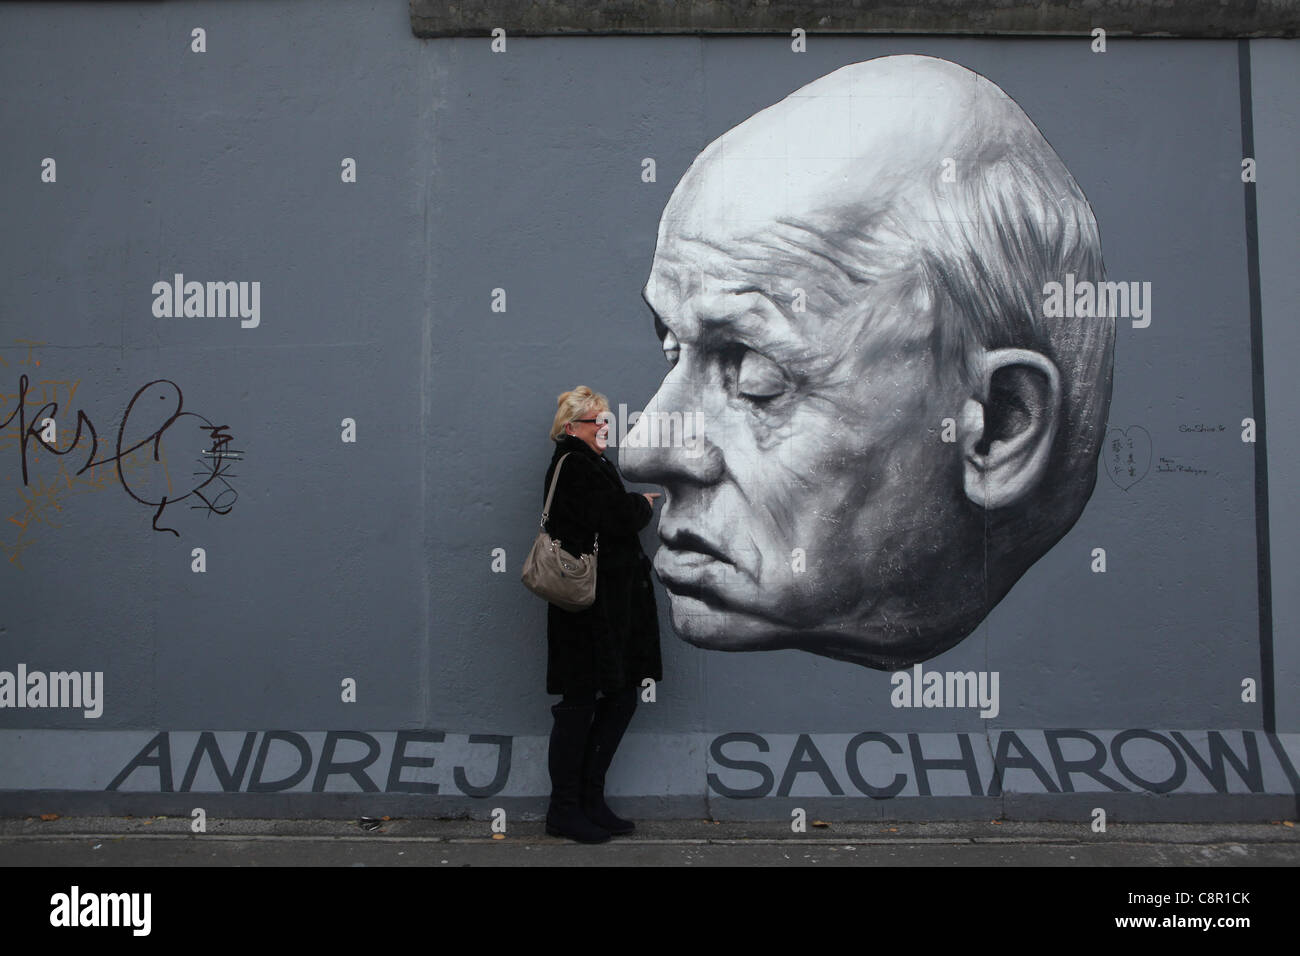 Andrei Sakharov pictured by Russian artist Dmitri Vrubel on the Berlin Wall in East Side Gallery in Berlin, Germany. - Stock Image